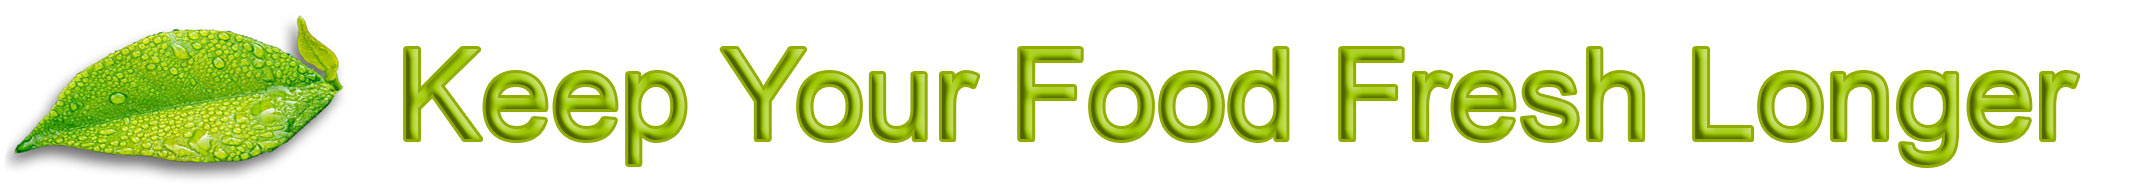 PureSafe sanitizer keeps your food fresh longer, and is available in a healthy food stor near me in Sarasota at 1279 Beneva Road South, Sarasota, FL 34232